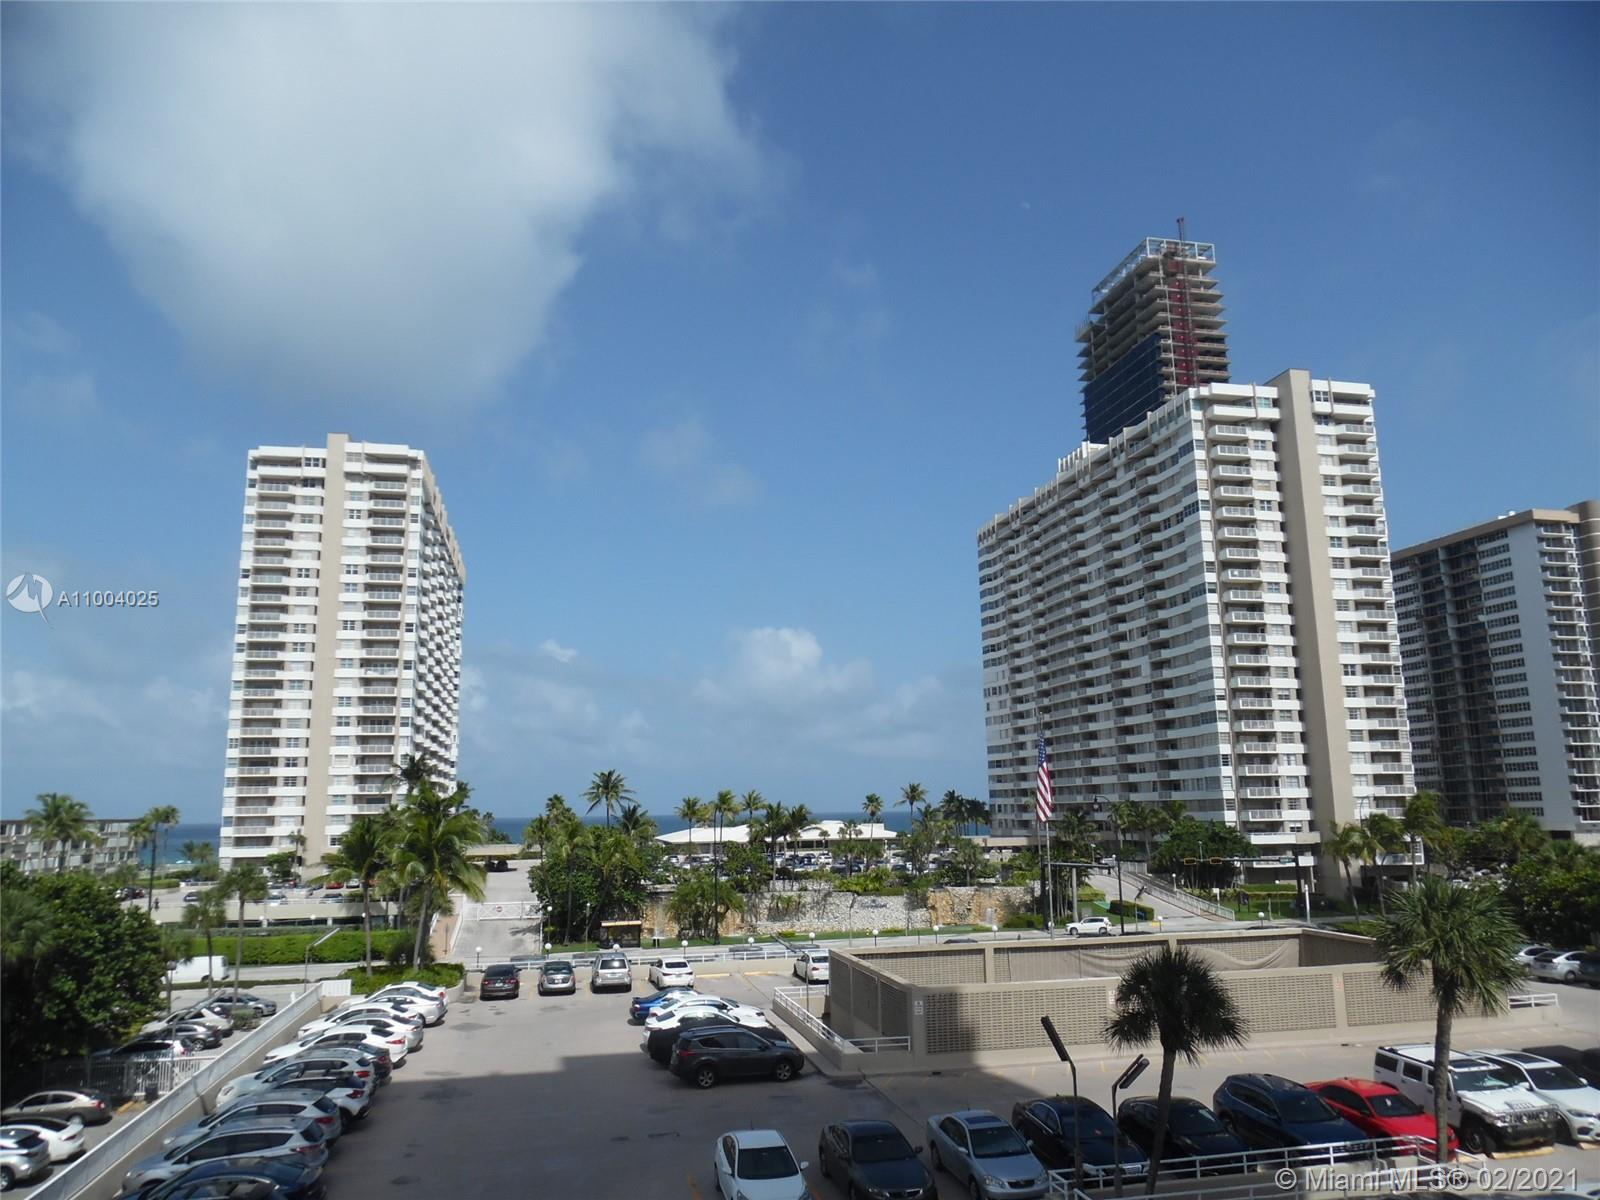 TRULY A NICE UNIT IN VERY DESIRABLE HEMISPHERES COMPLEX. THIS 2/2 IS LOCATED ON THE HEMISPHERE BAY N